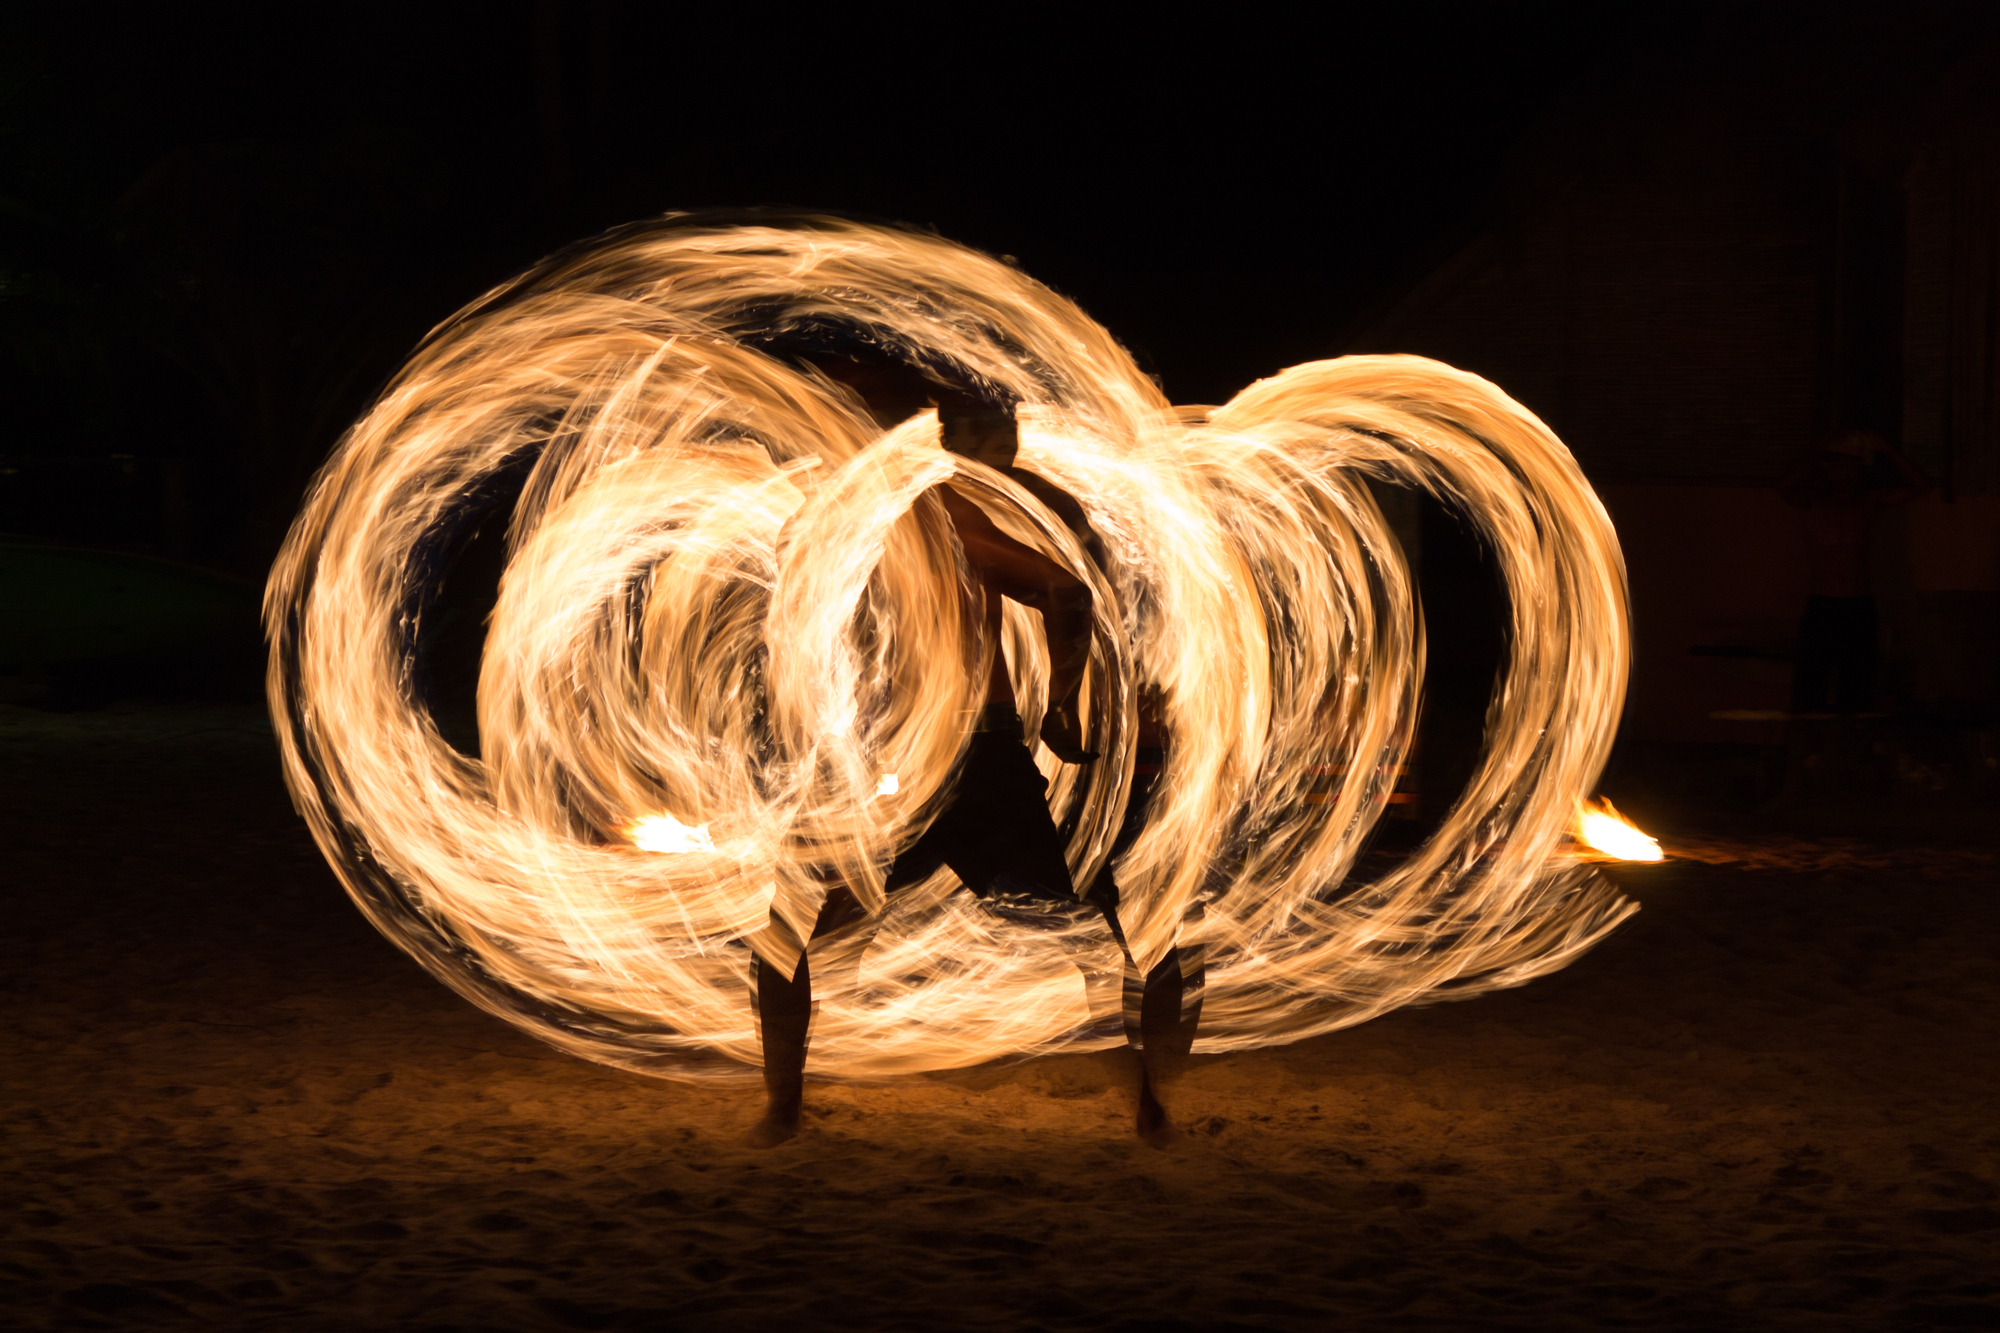 Man Fire Show on the beach